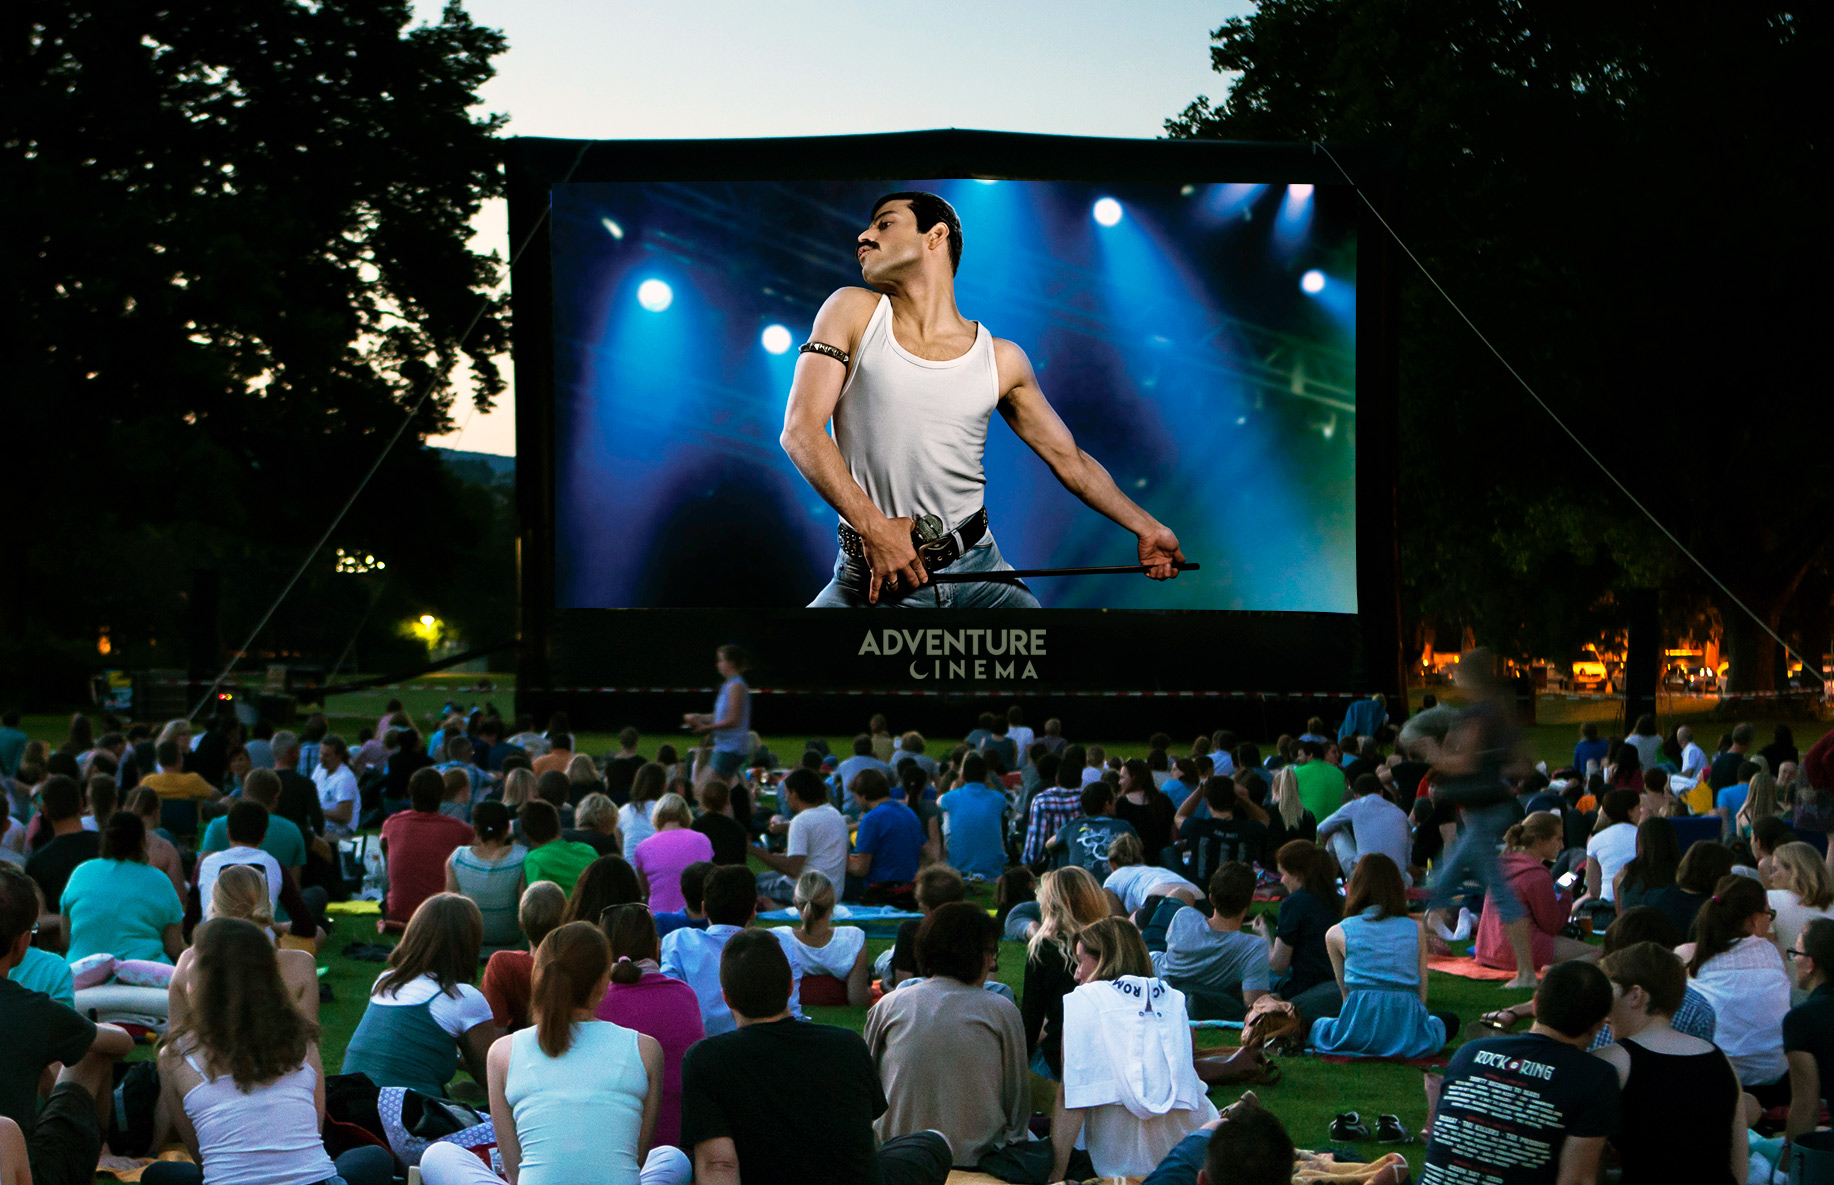 Cinema Under The Stars comes to East of England Arena and Events Centre, July 13